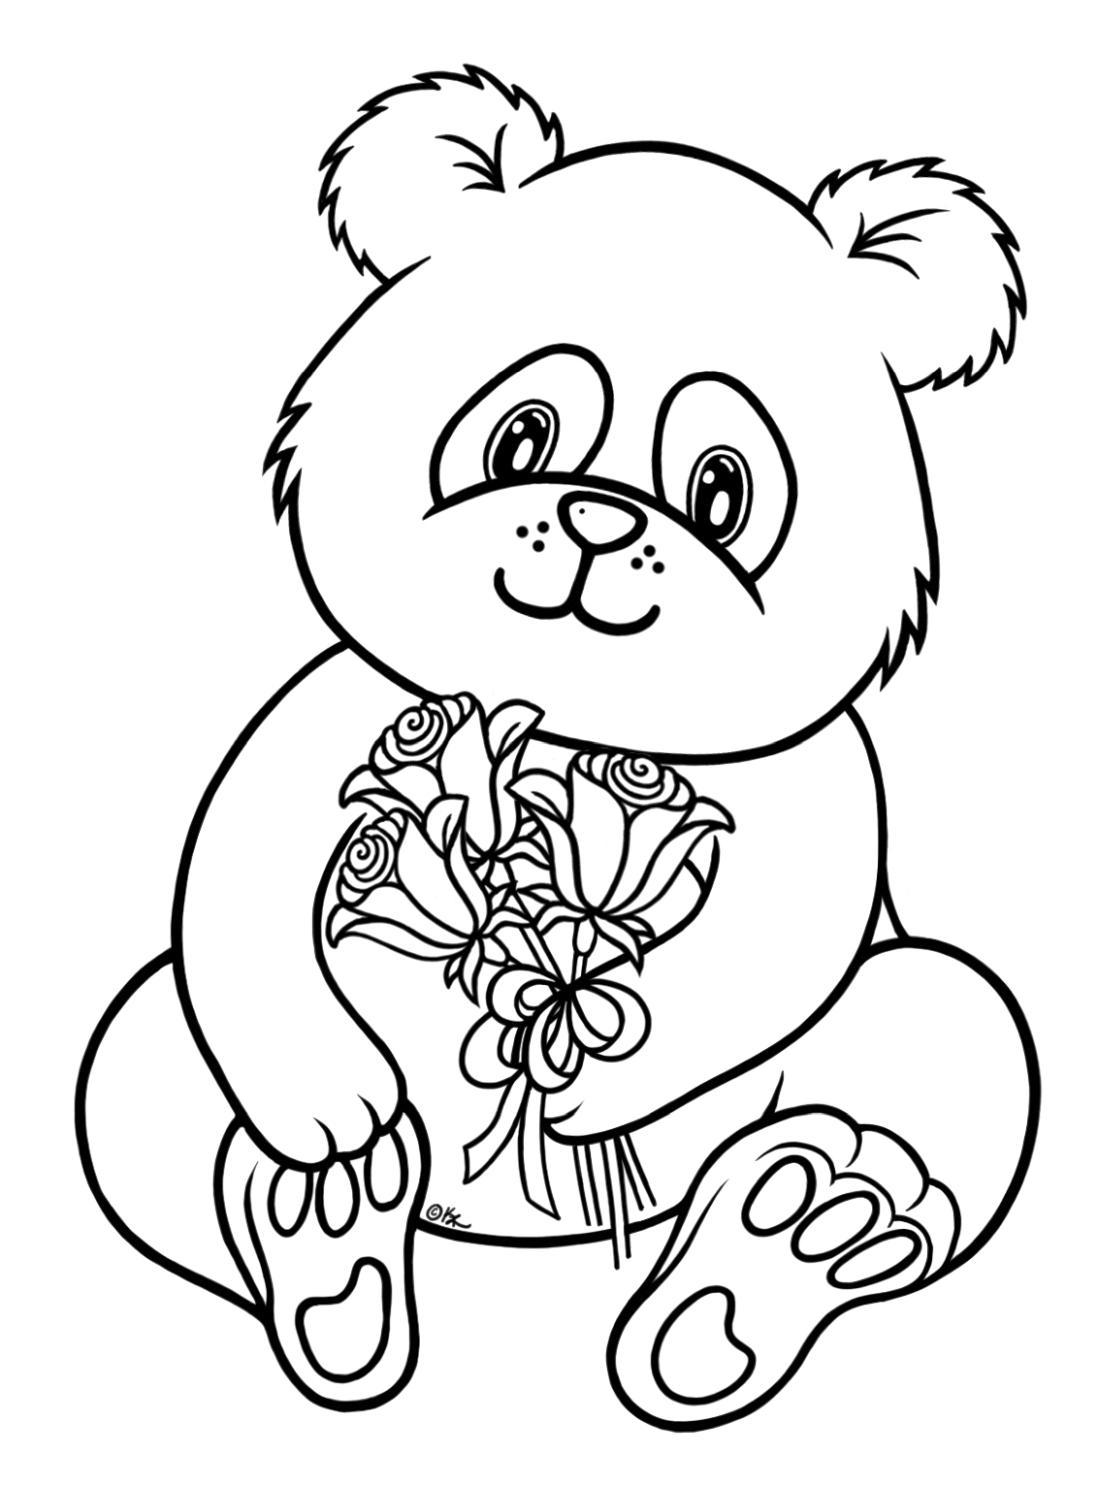 simple panda coloring pages red panda drawing at getdrawings free download simple panda coloring pages